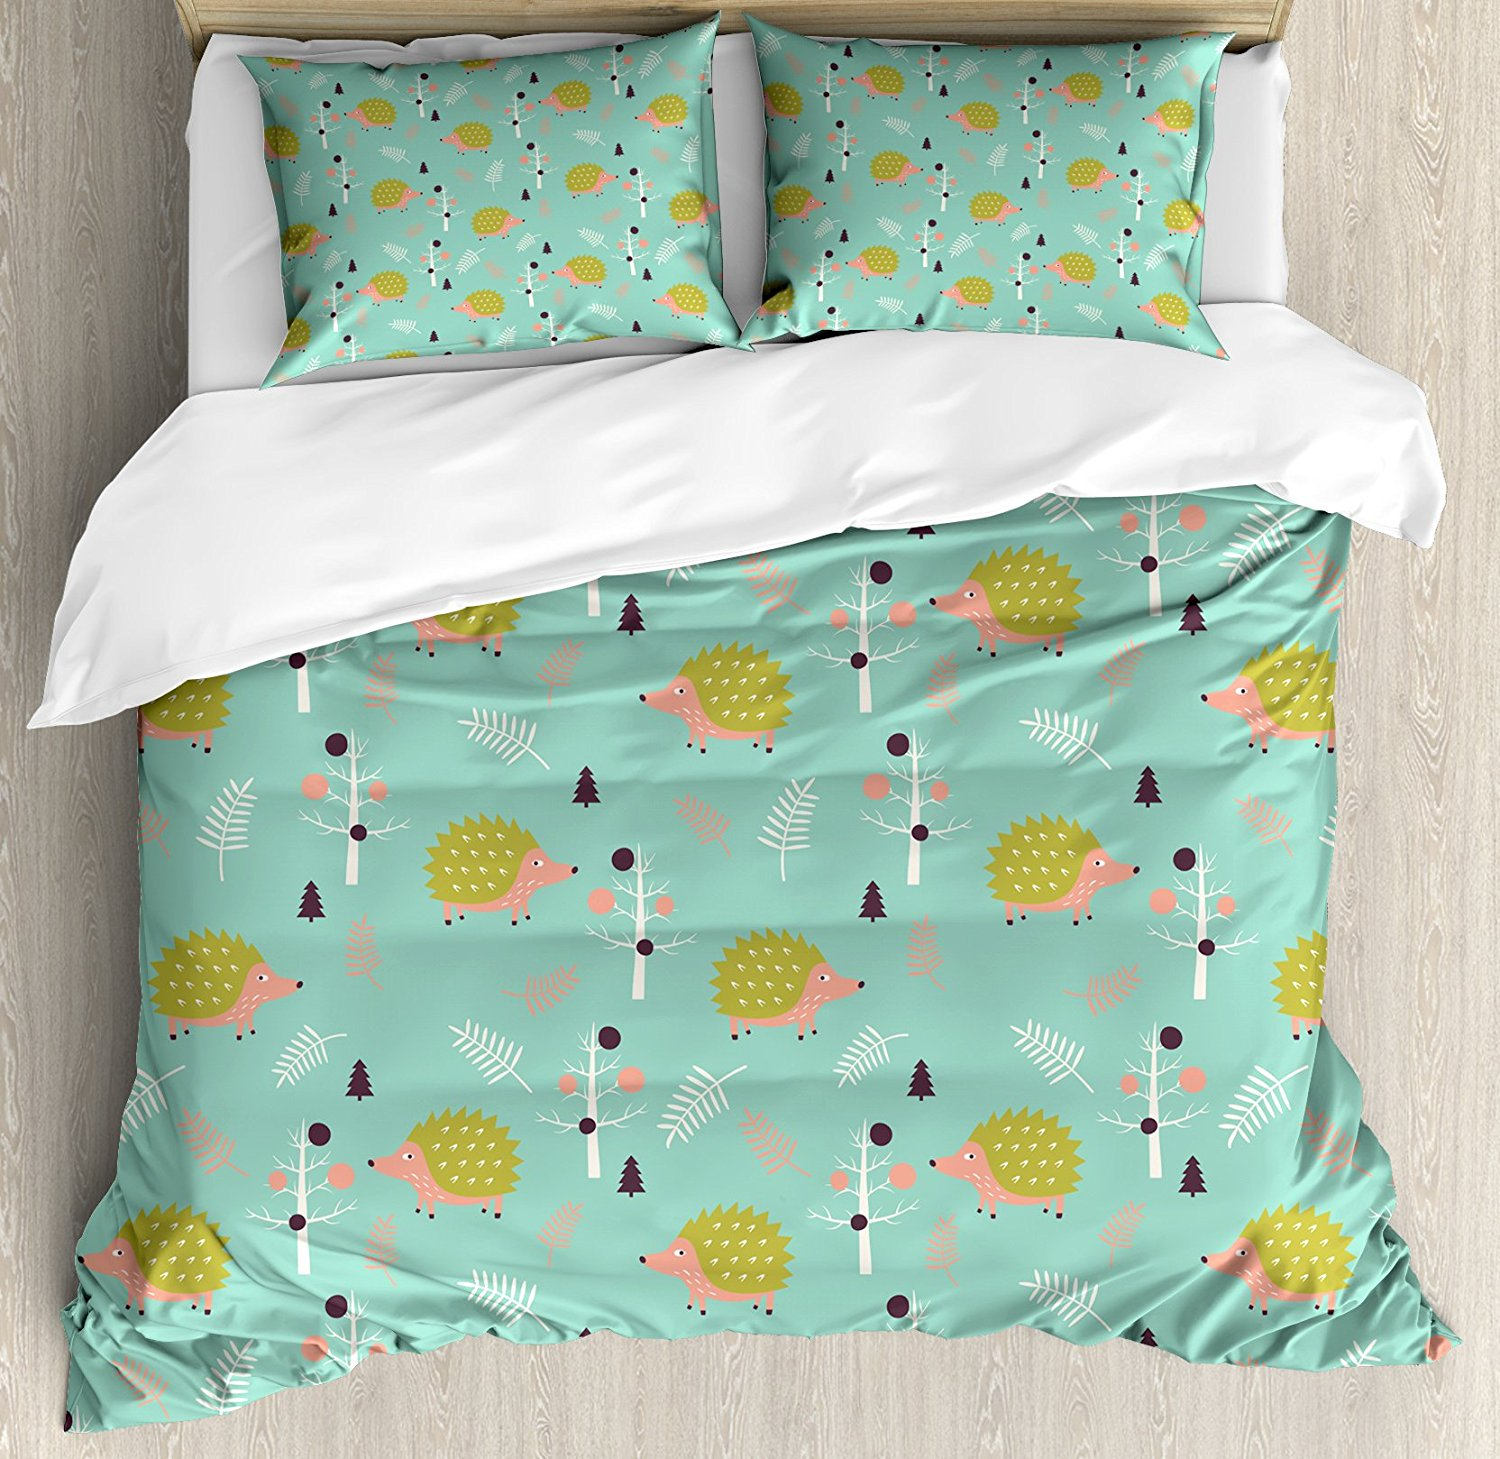 Duvet Cover Set, Scandinavian Art Pattern Forest Elements